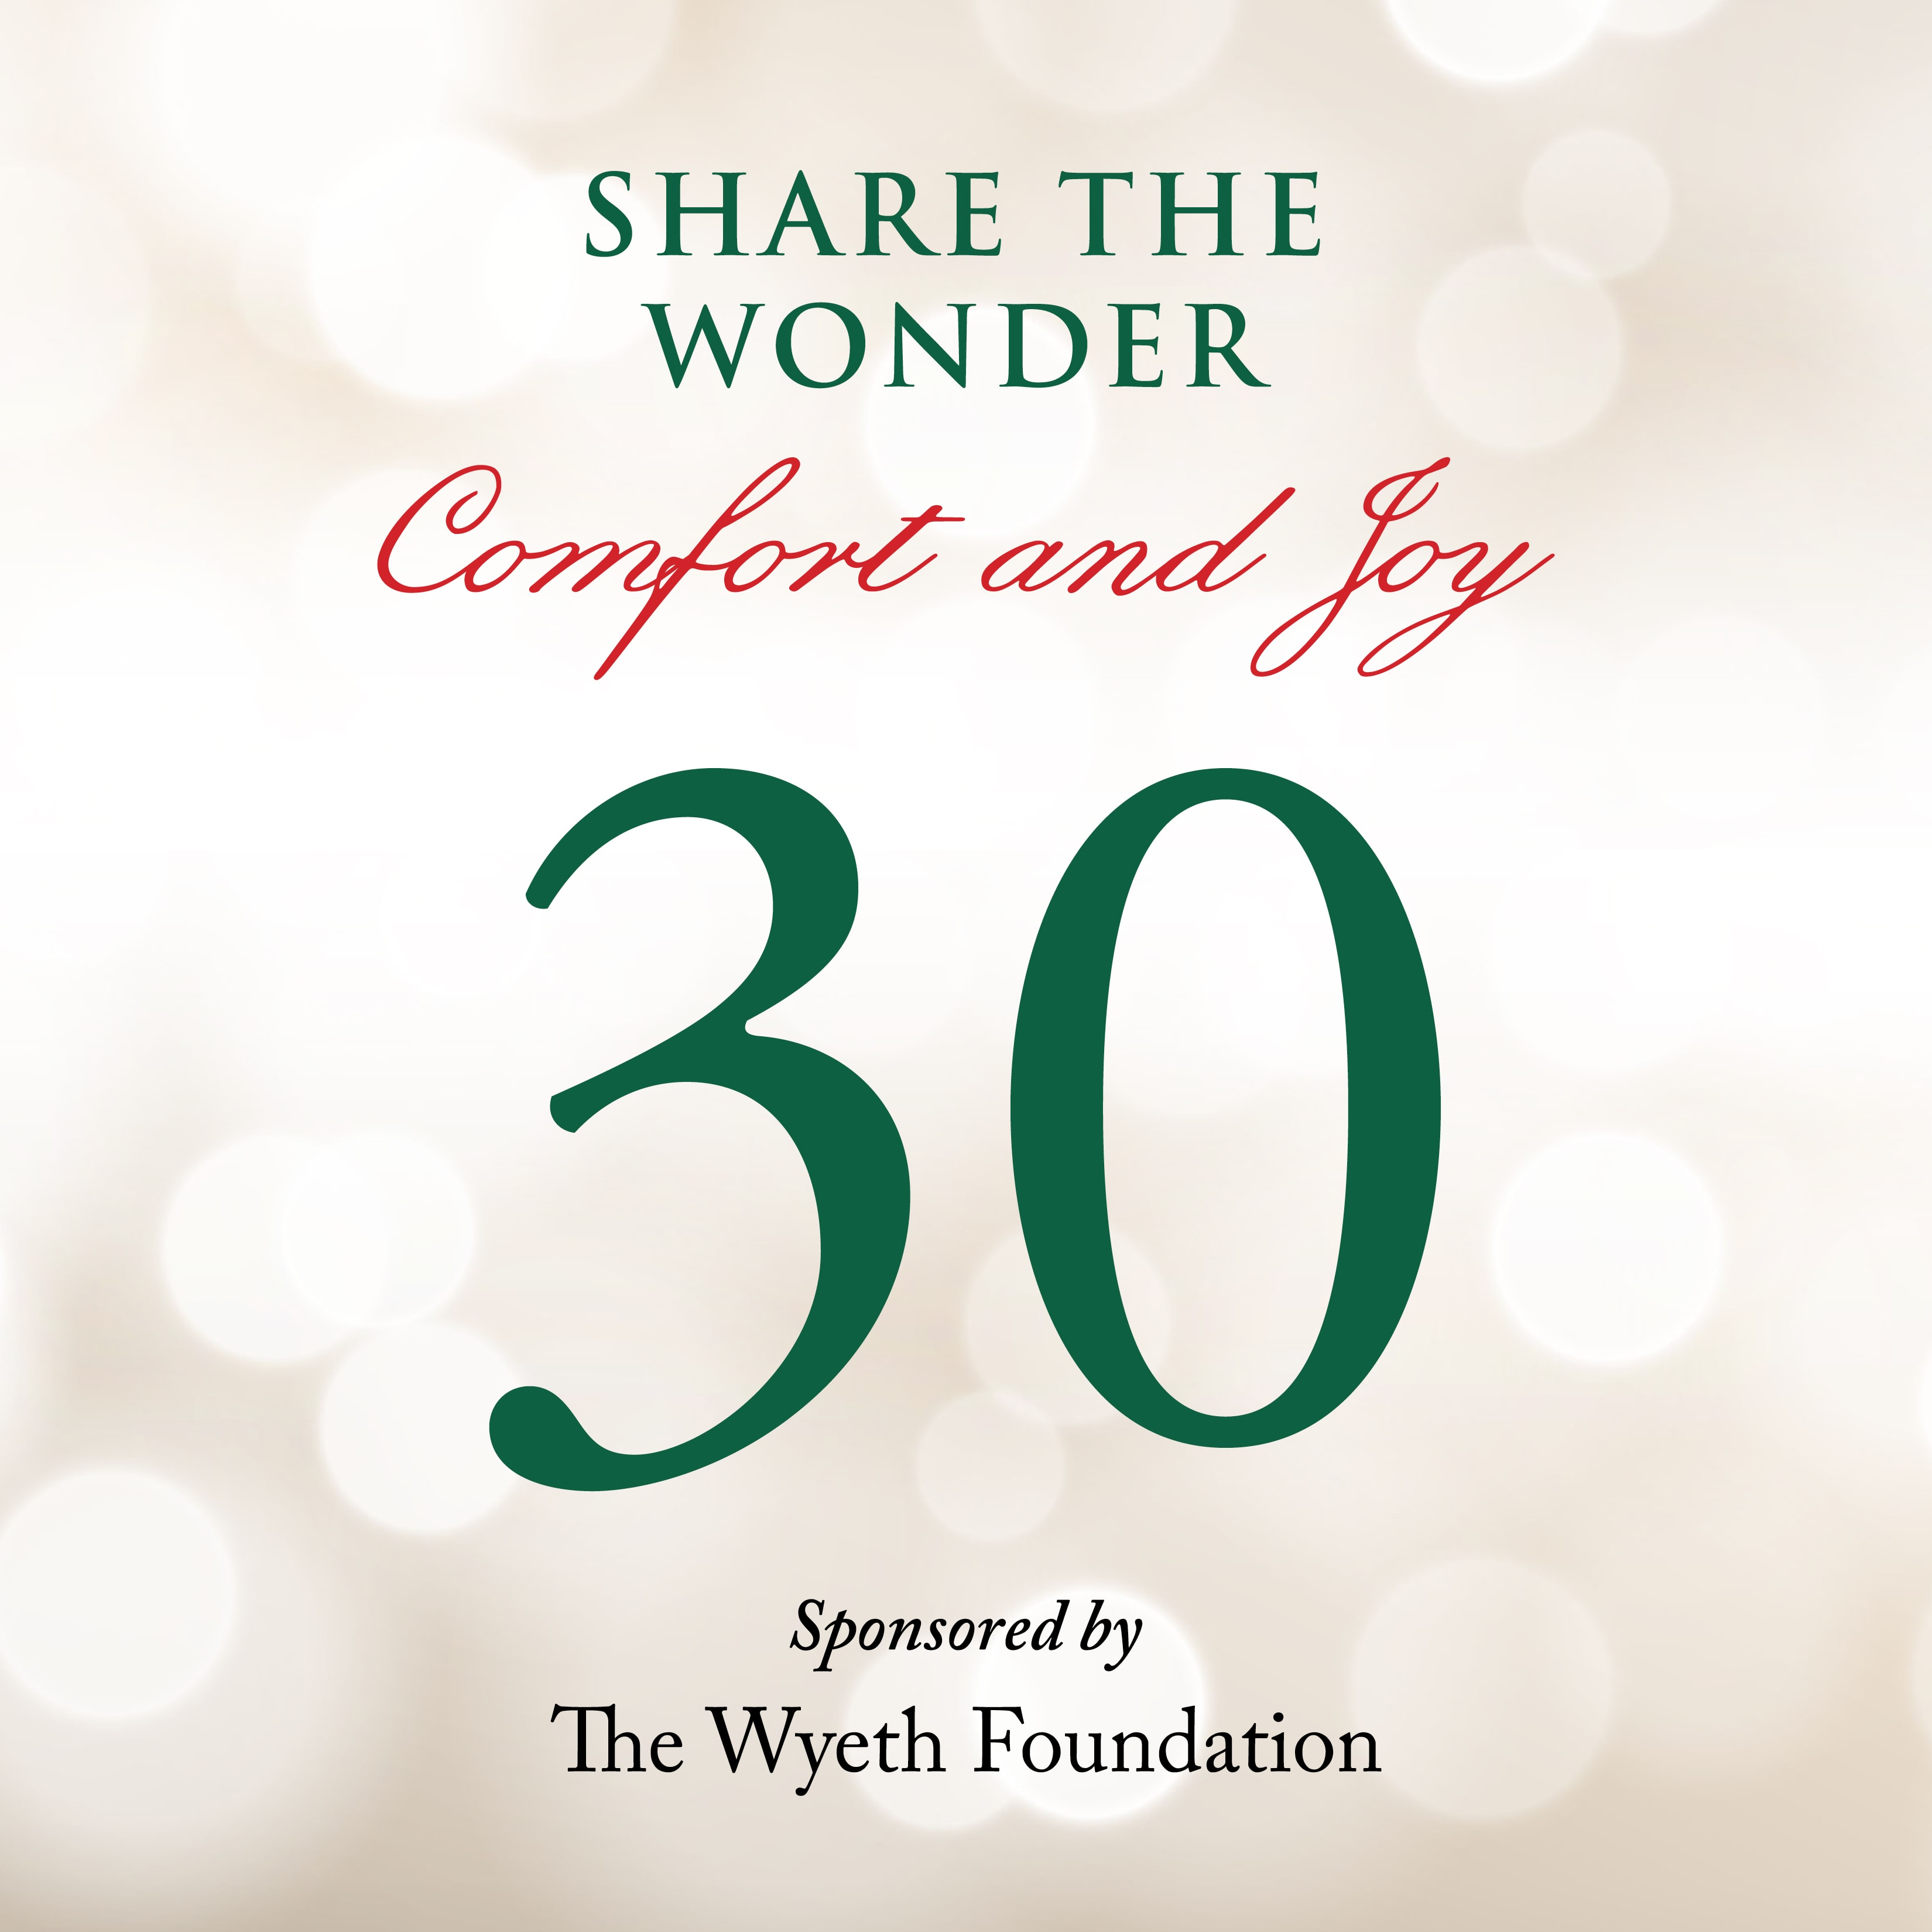 Day 30 of Share the Wonder: December 27